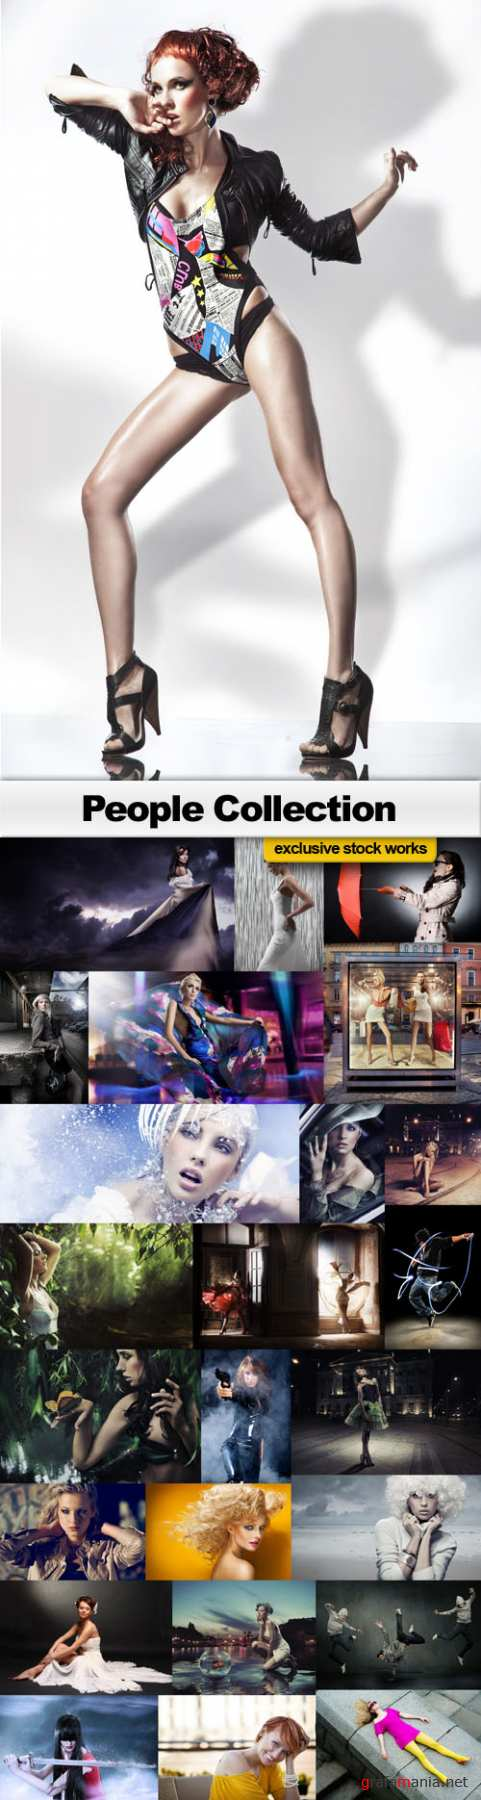 People Collection - 25 JPEG